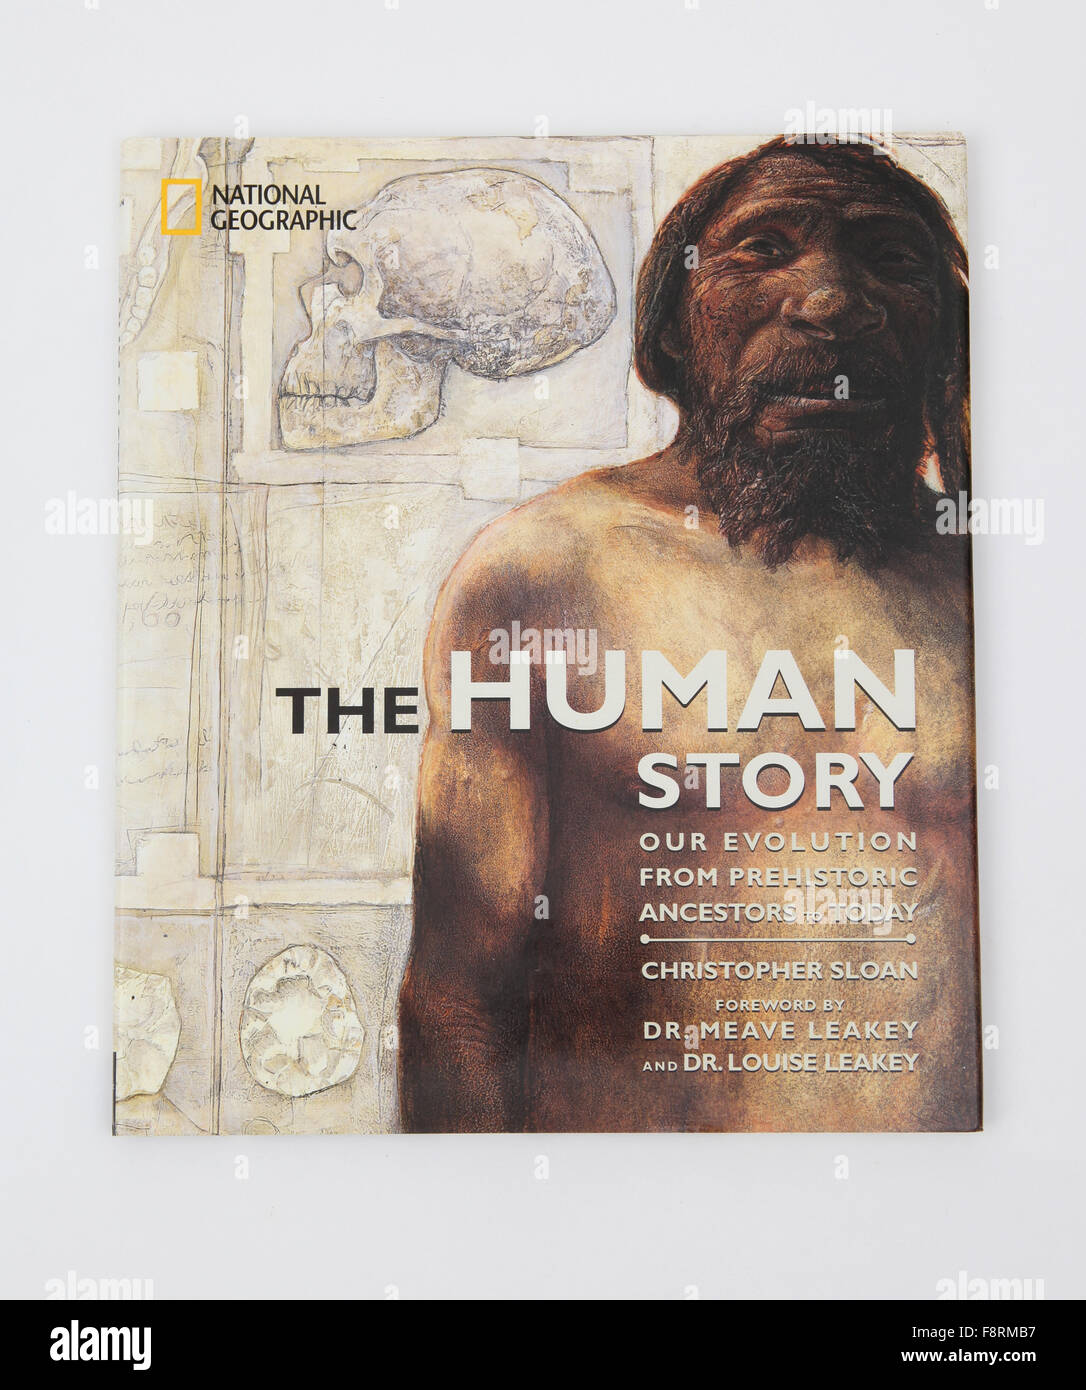 The book -The Human Story, by Christopher Sloan - Stock Image